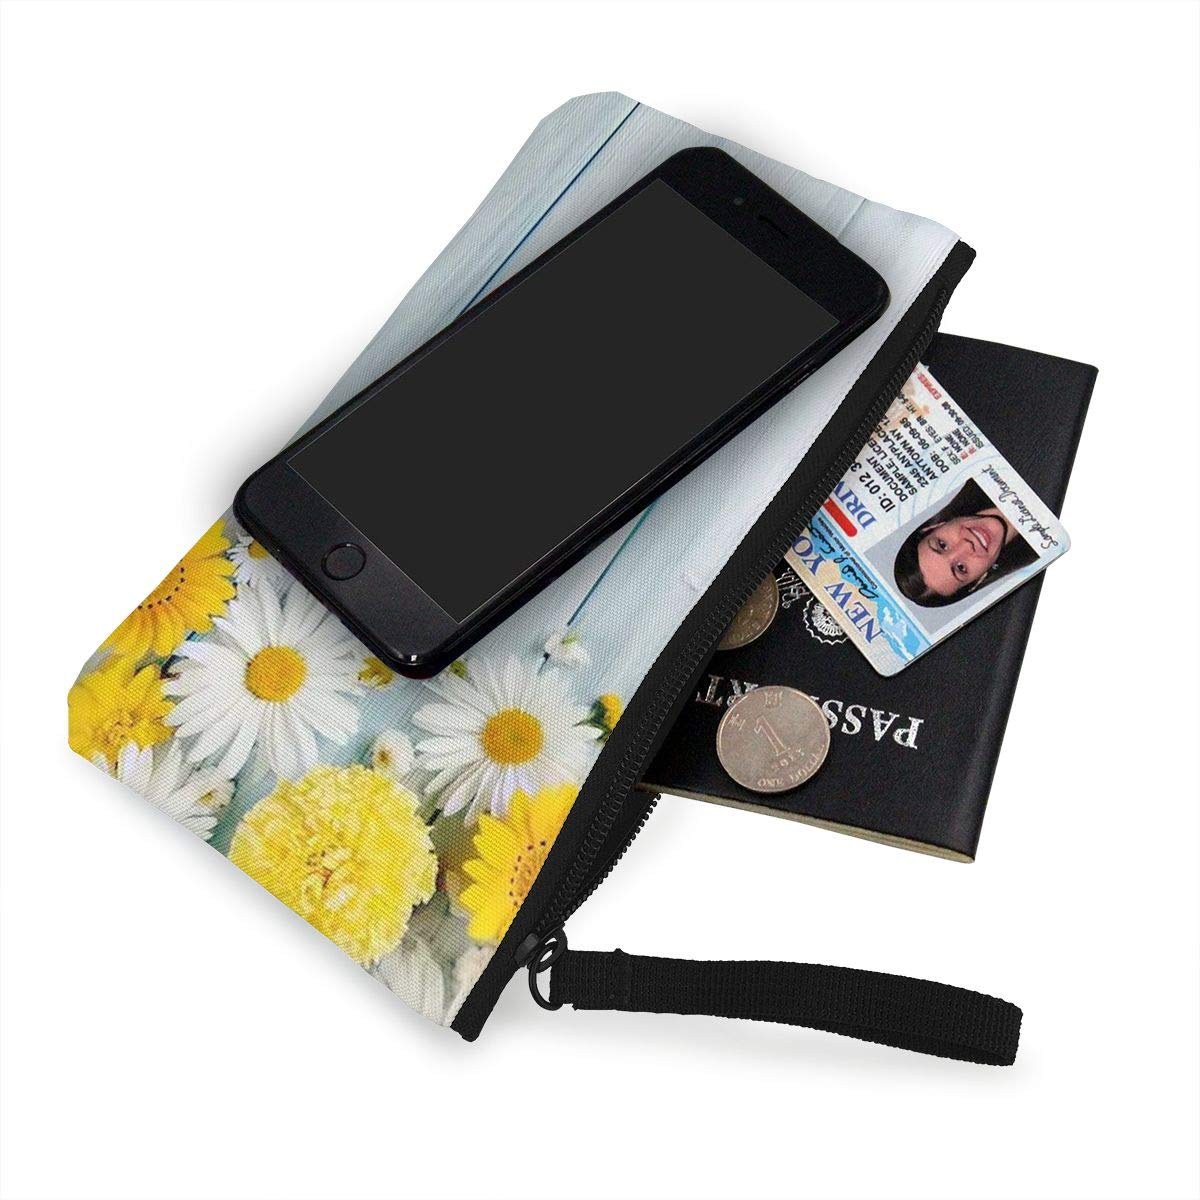 Maple Memories Chrysanthemums Wooden Court Portable Canvas Coin Purse Change Purse Pouch Mini Wallet Gifts For Women Girls